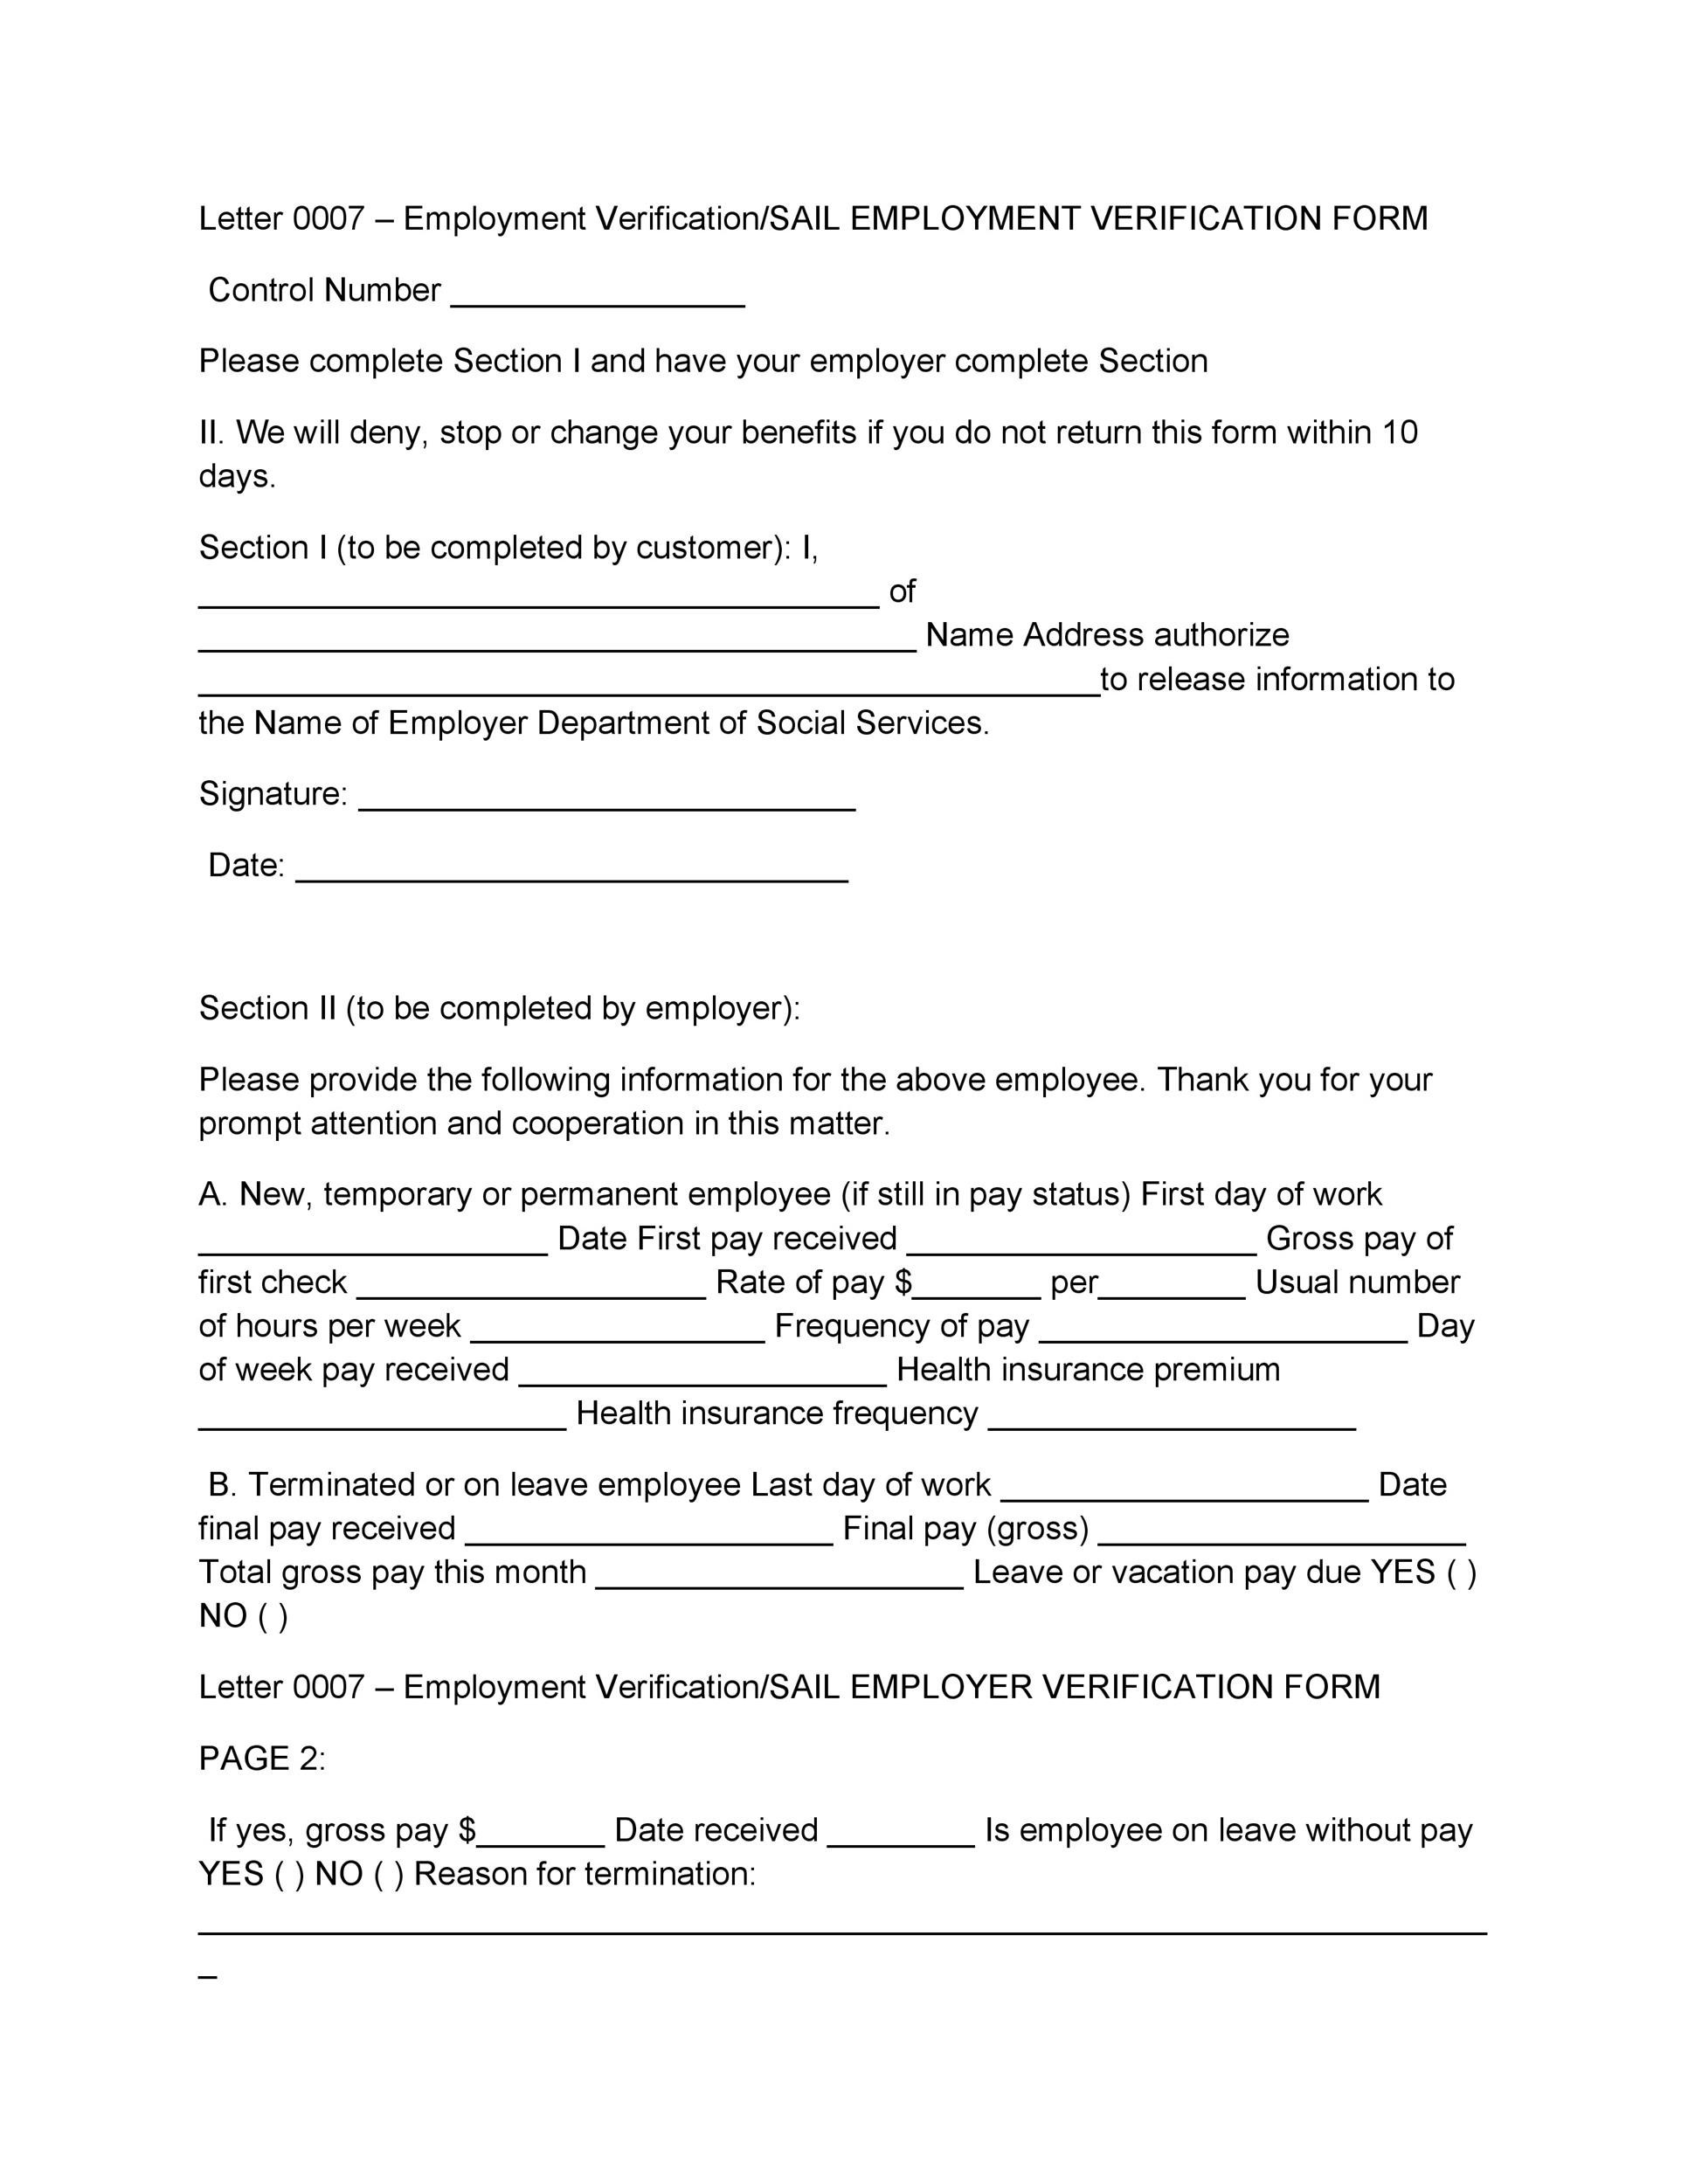 40 Proof of Employment Letters Verification Forms Samples